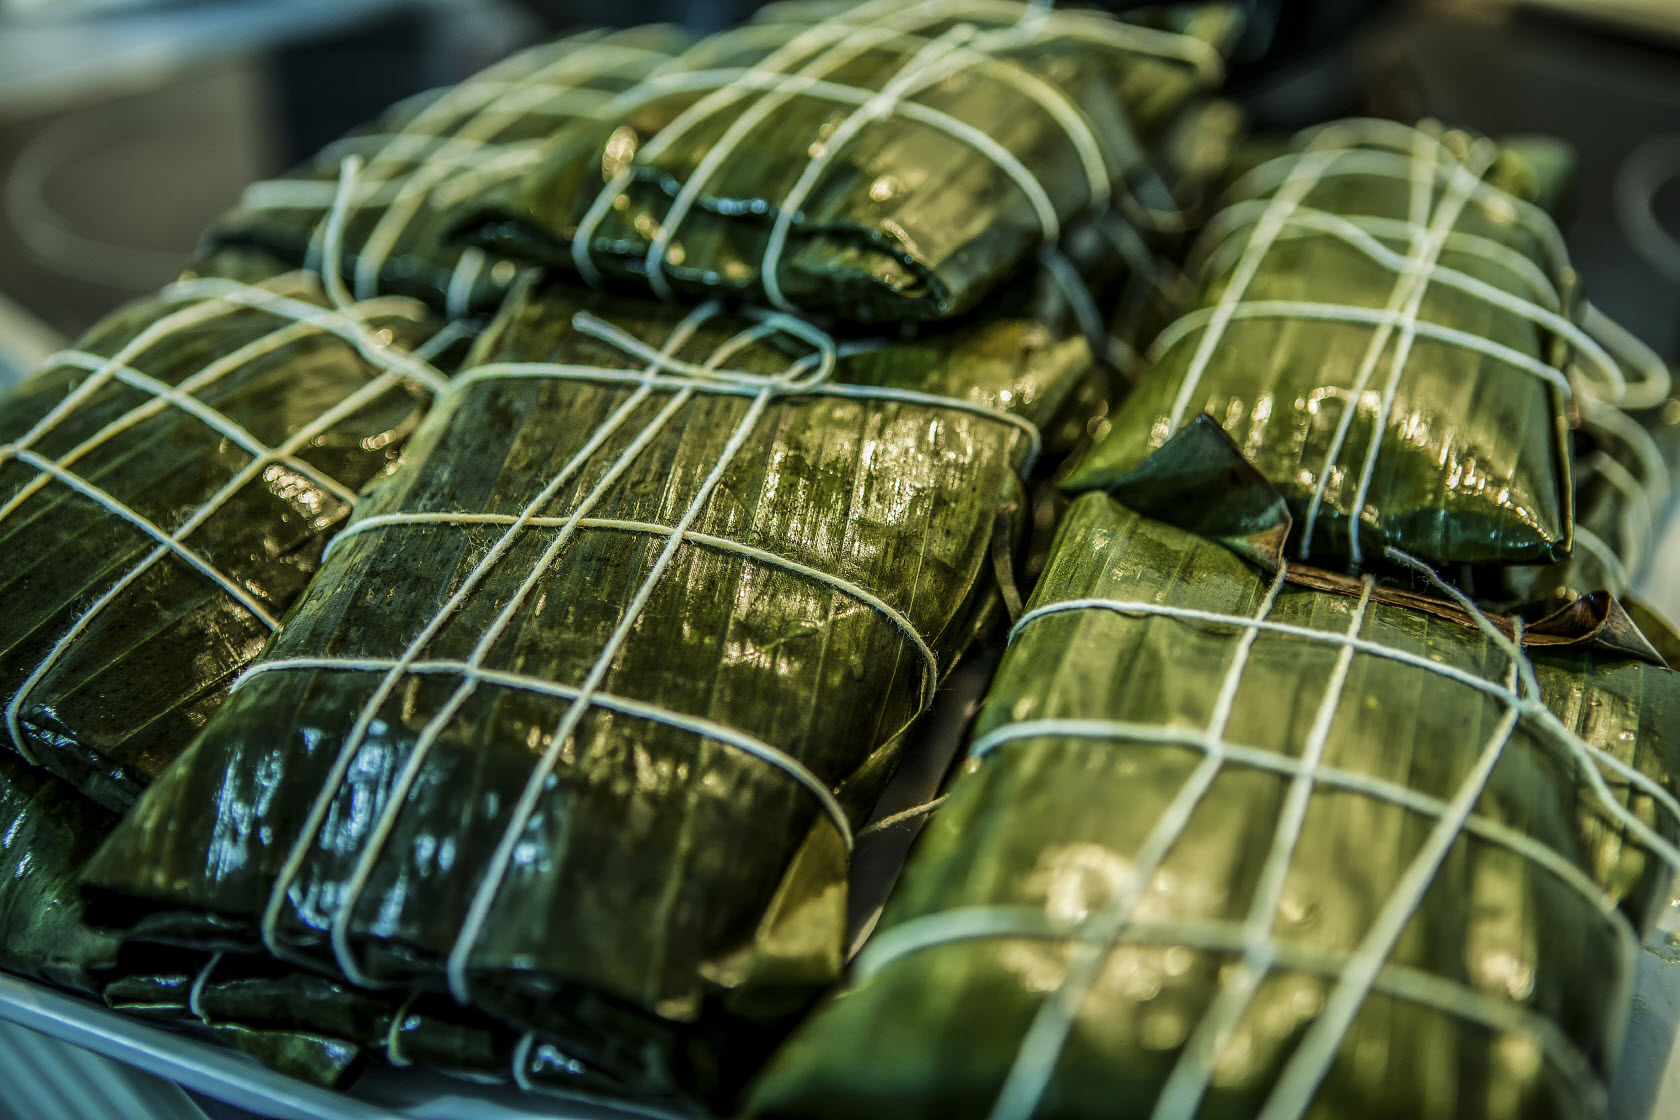 This image:  Ecuadorians wrap tamales wrapped in banana leaves, rather than corn leaves elsewhere in South America.